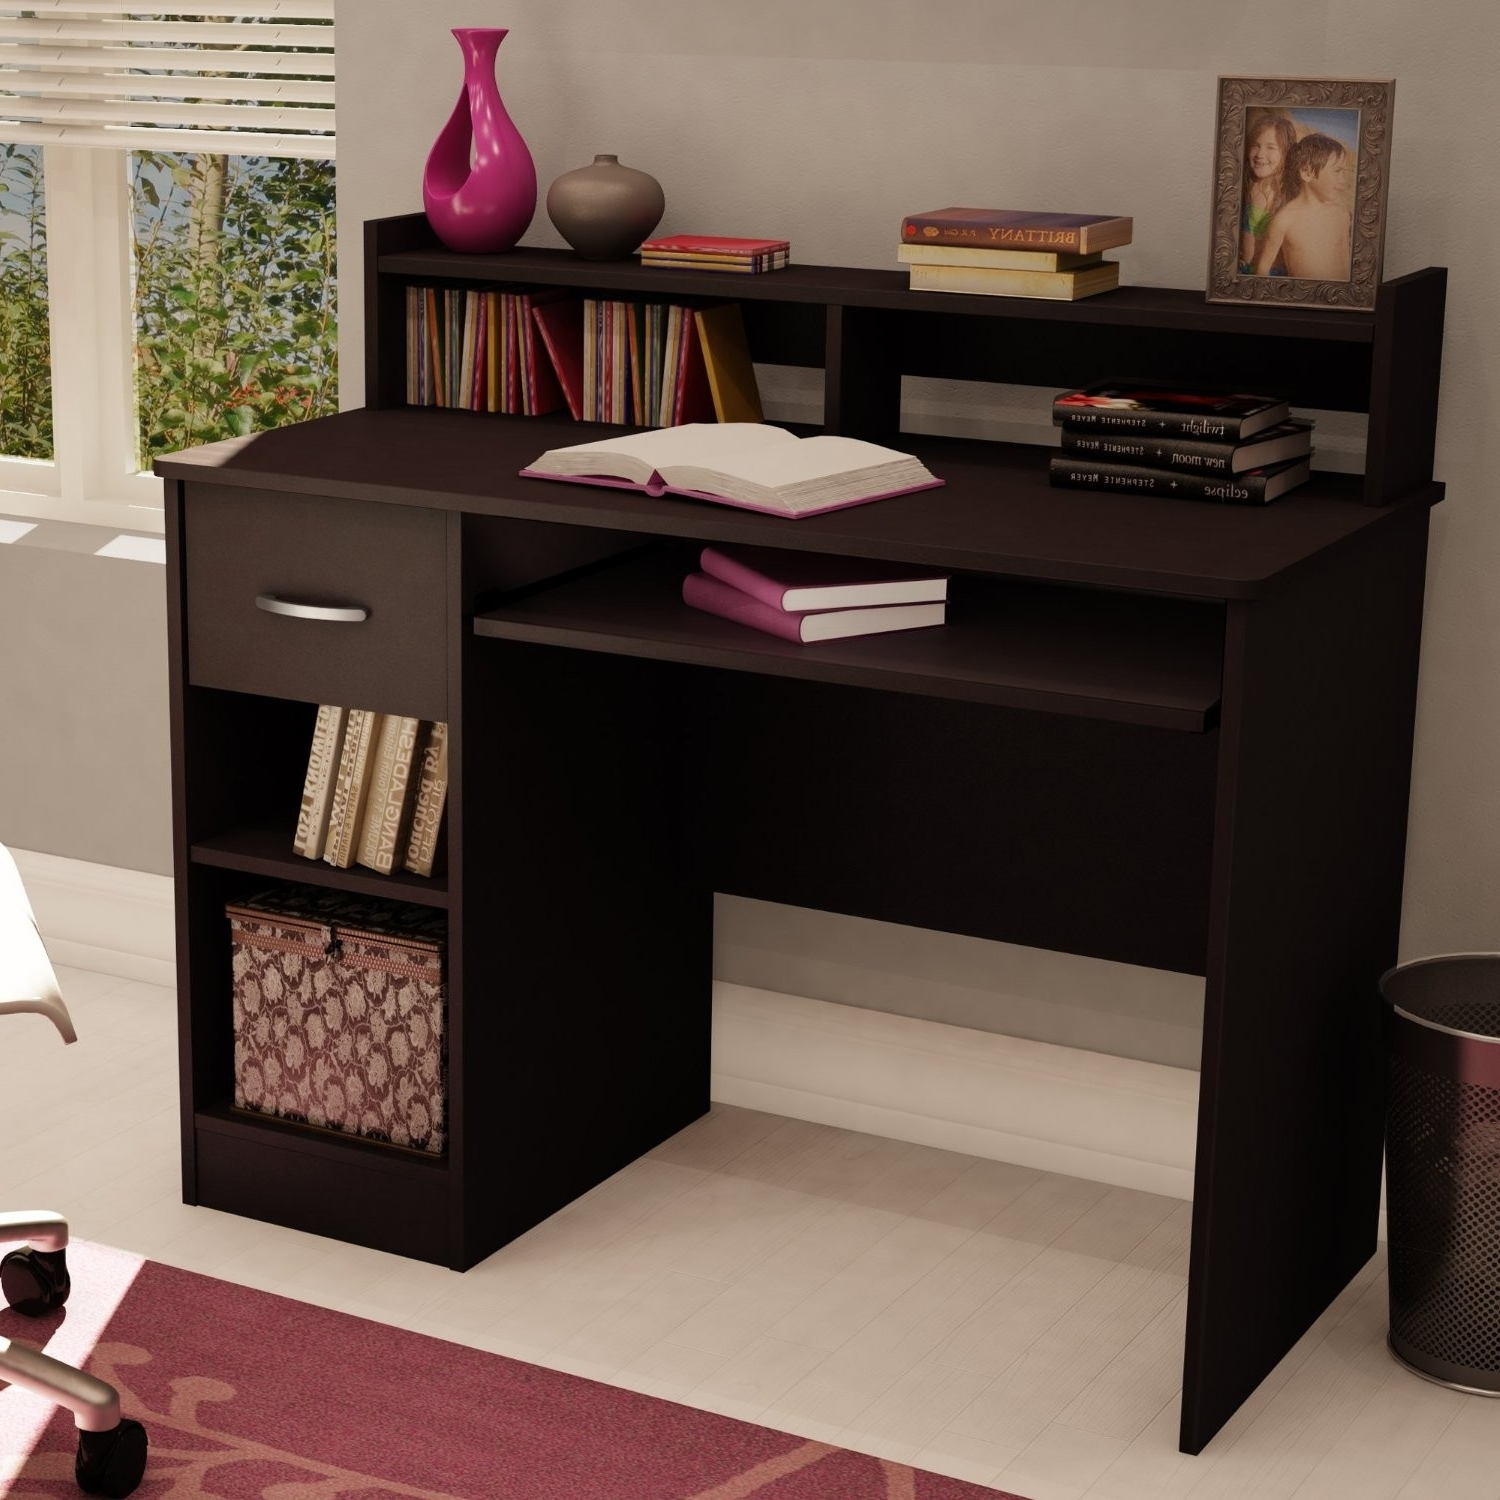 Trendy Bookshelves With Study Table Design Single Room Layout Desk Trends In Study Desk With Bookshelves (View 11 of 15)